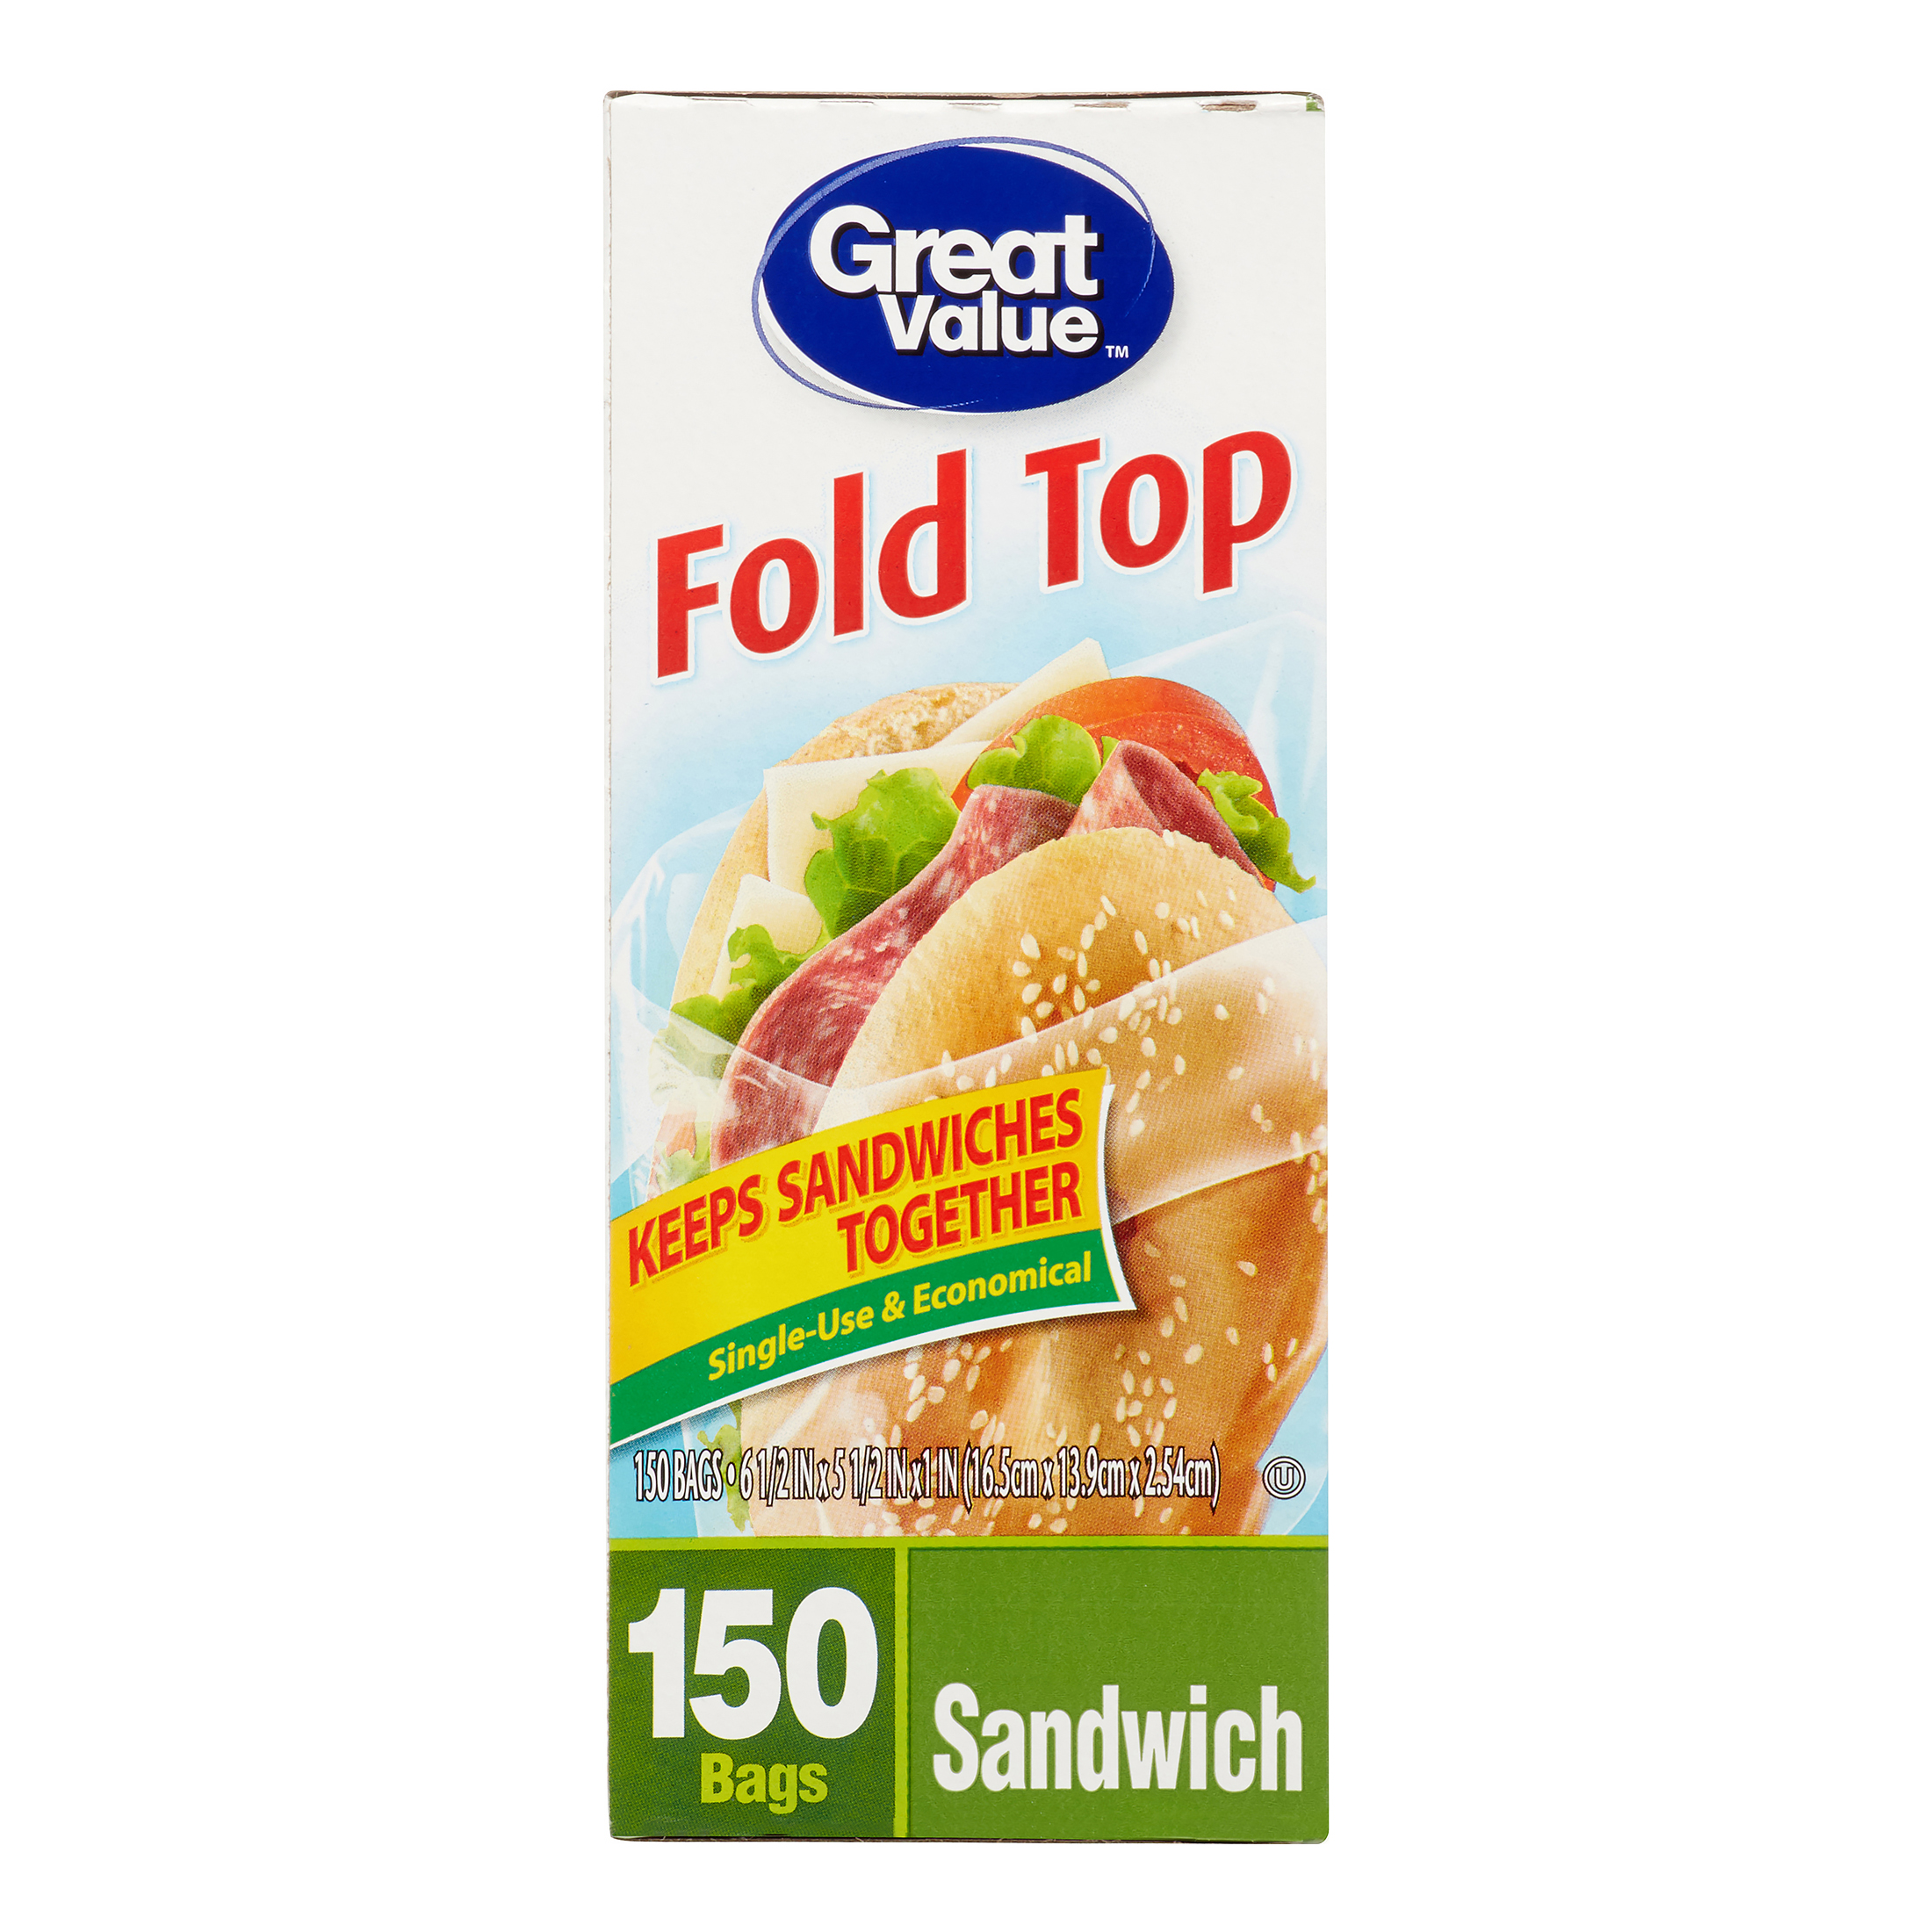 Great Value Fold Top Sandwich Bags, 150 Count